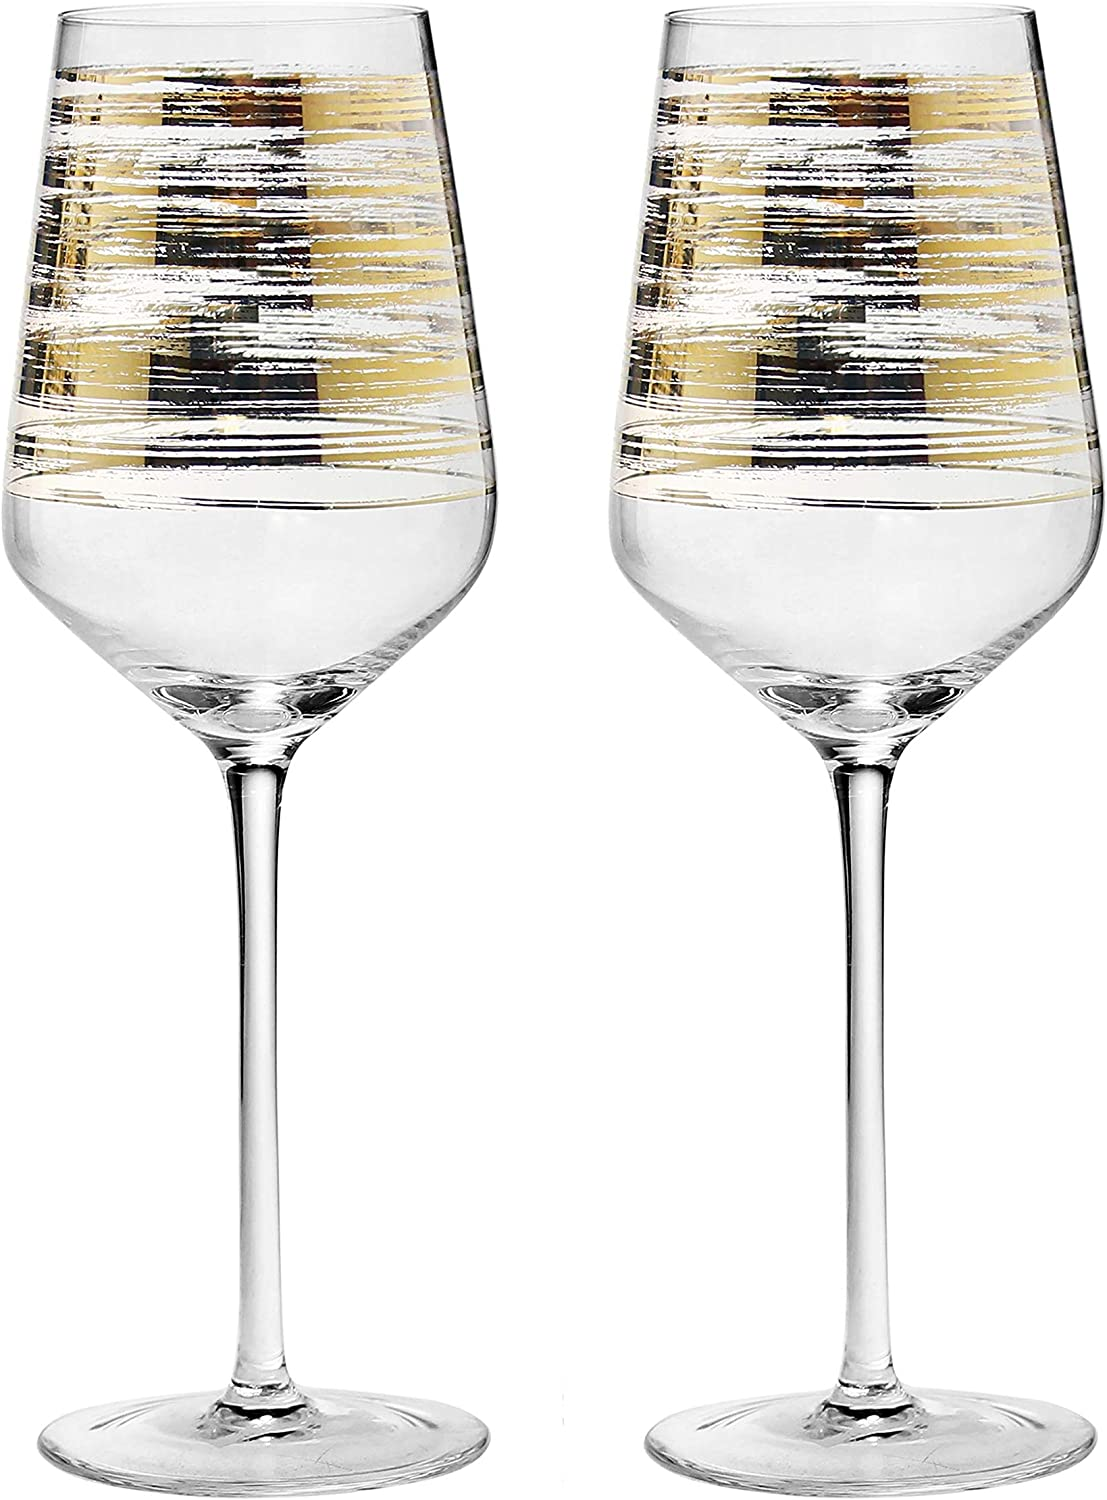 StarRy Set of 2 Handblown Red Wine Glasses with Gold Accents – Fancy Lead-Free Glass w/ Long Stem, Ideal for Wine Tasting, Lovely Gifts for Women, Wedding, Anniversary, Birthday Christmas